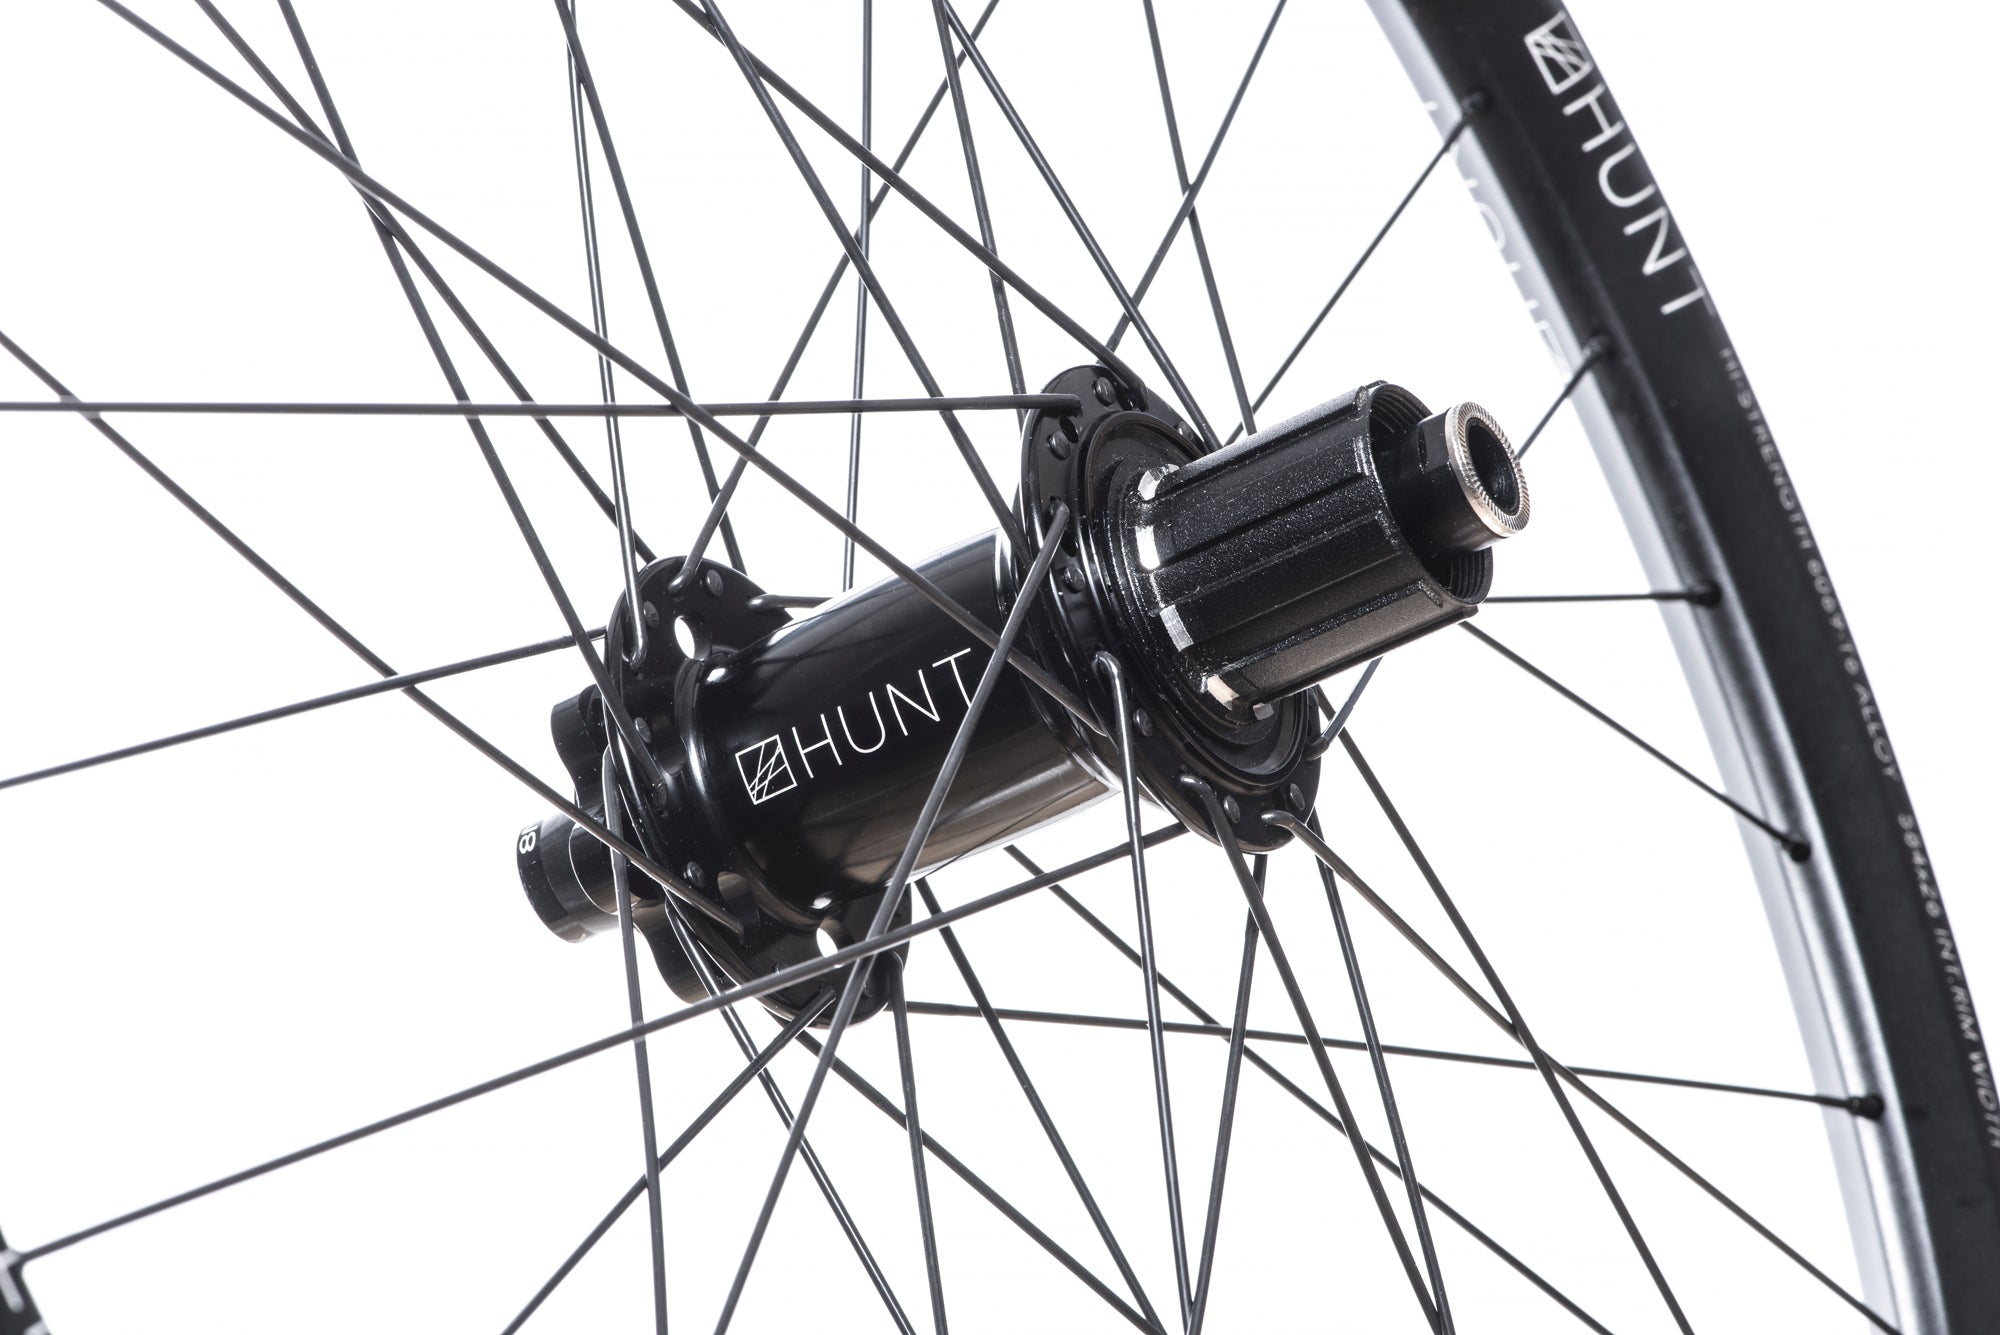 <h1>Rear Hub</h1><i>We create wheels to match the needs of riders who want the most from their wheels. The DH hubs have been chosen to increase stiffness, bearing durability and overall strength of your wheelset. On the rear, the RapidEngage MTB hubs with a superfast 3&deg; engagement, means you will be able to put the power down straight out of the corners.</i>